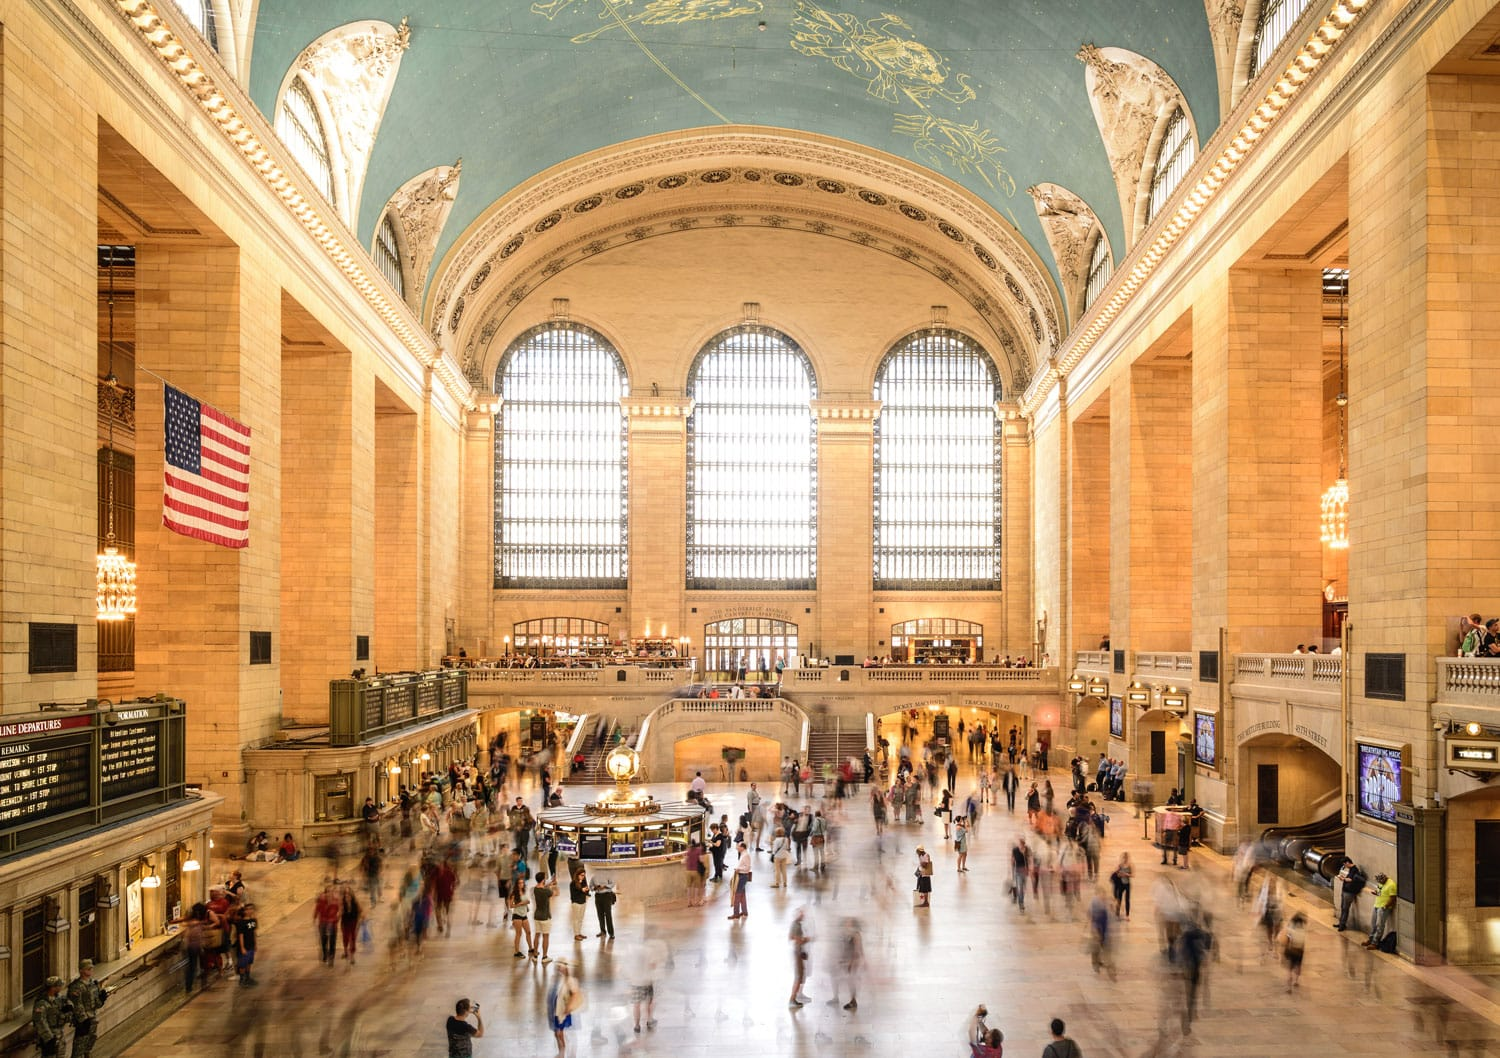 Commuters and tourists in the Grand Central Station in New York.